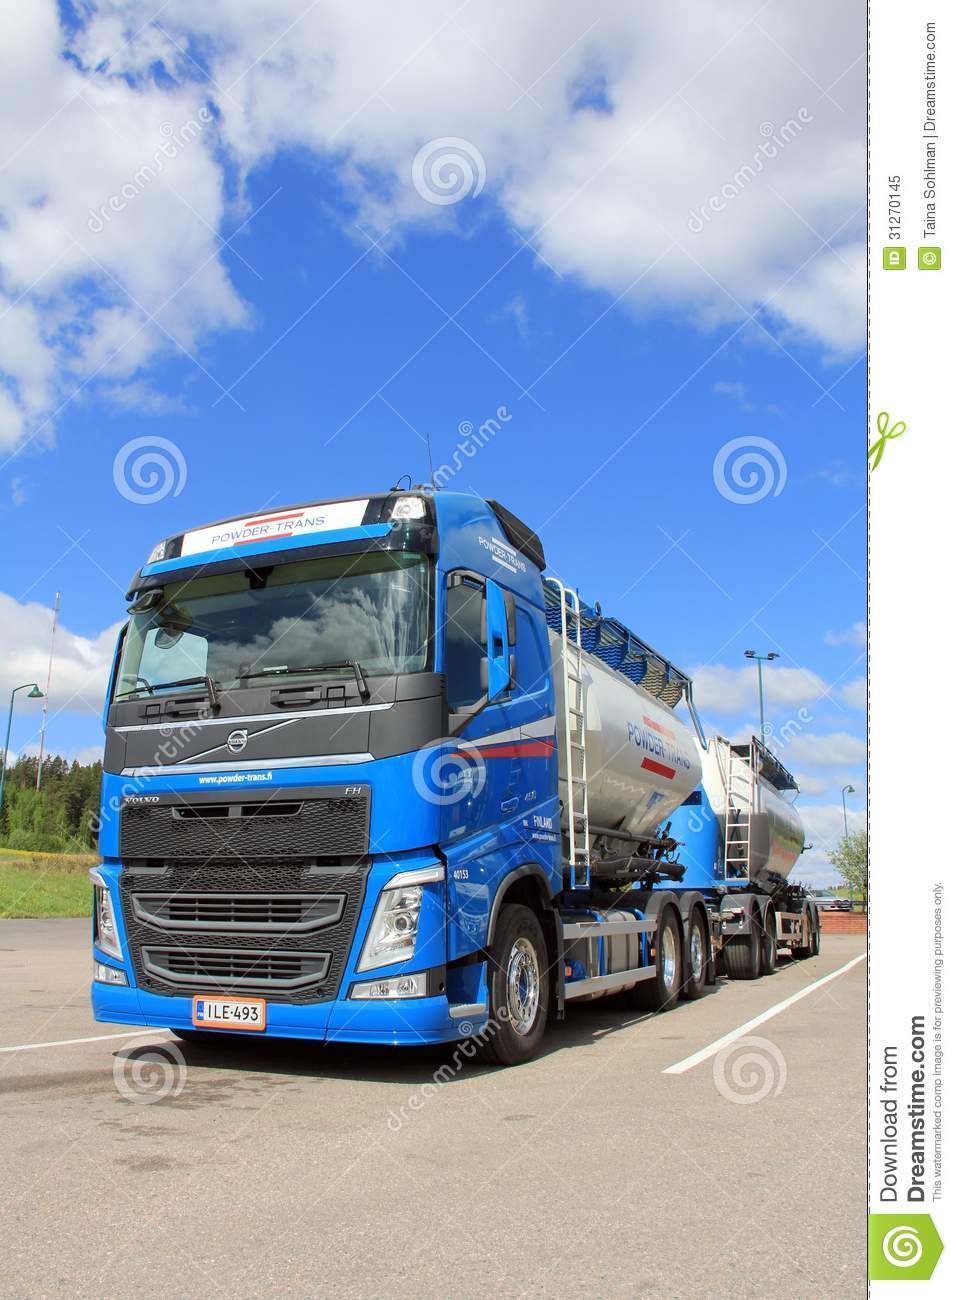 Volvo Fh 450 Bulk Transport Truck And Trailer Editorial